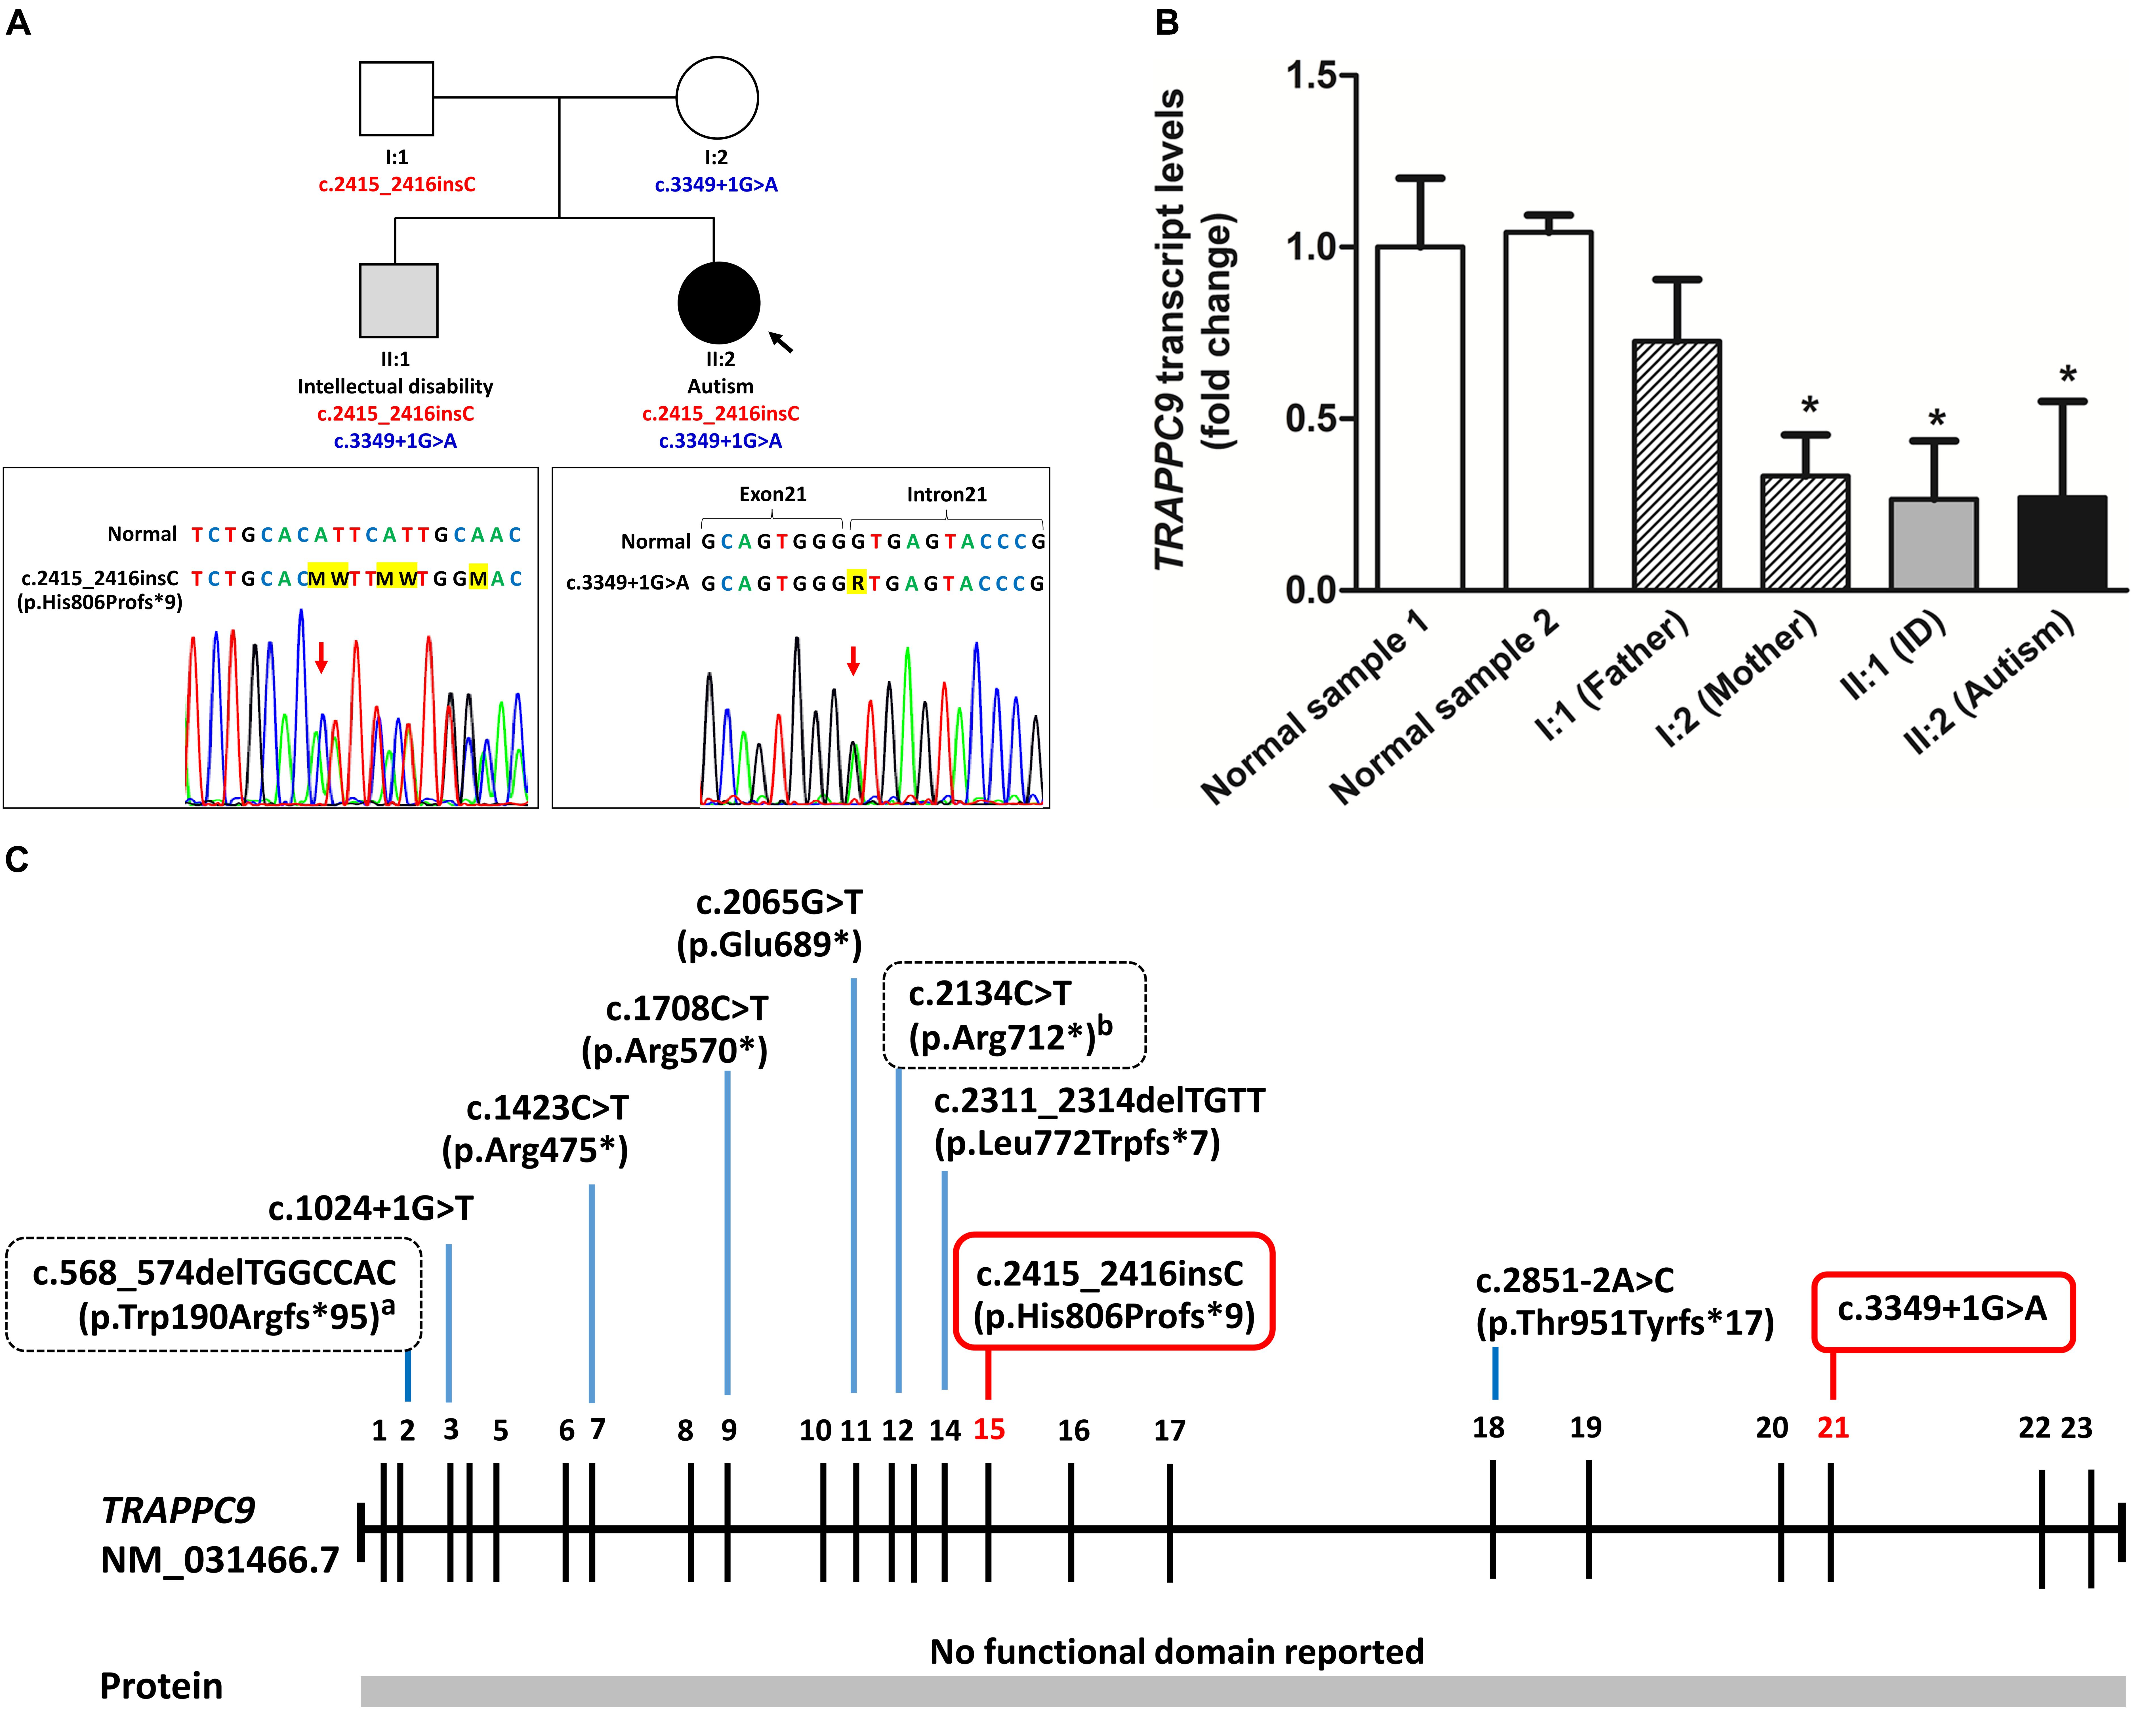 Frontiers | Novel Compound Heterozygous Mutations in the